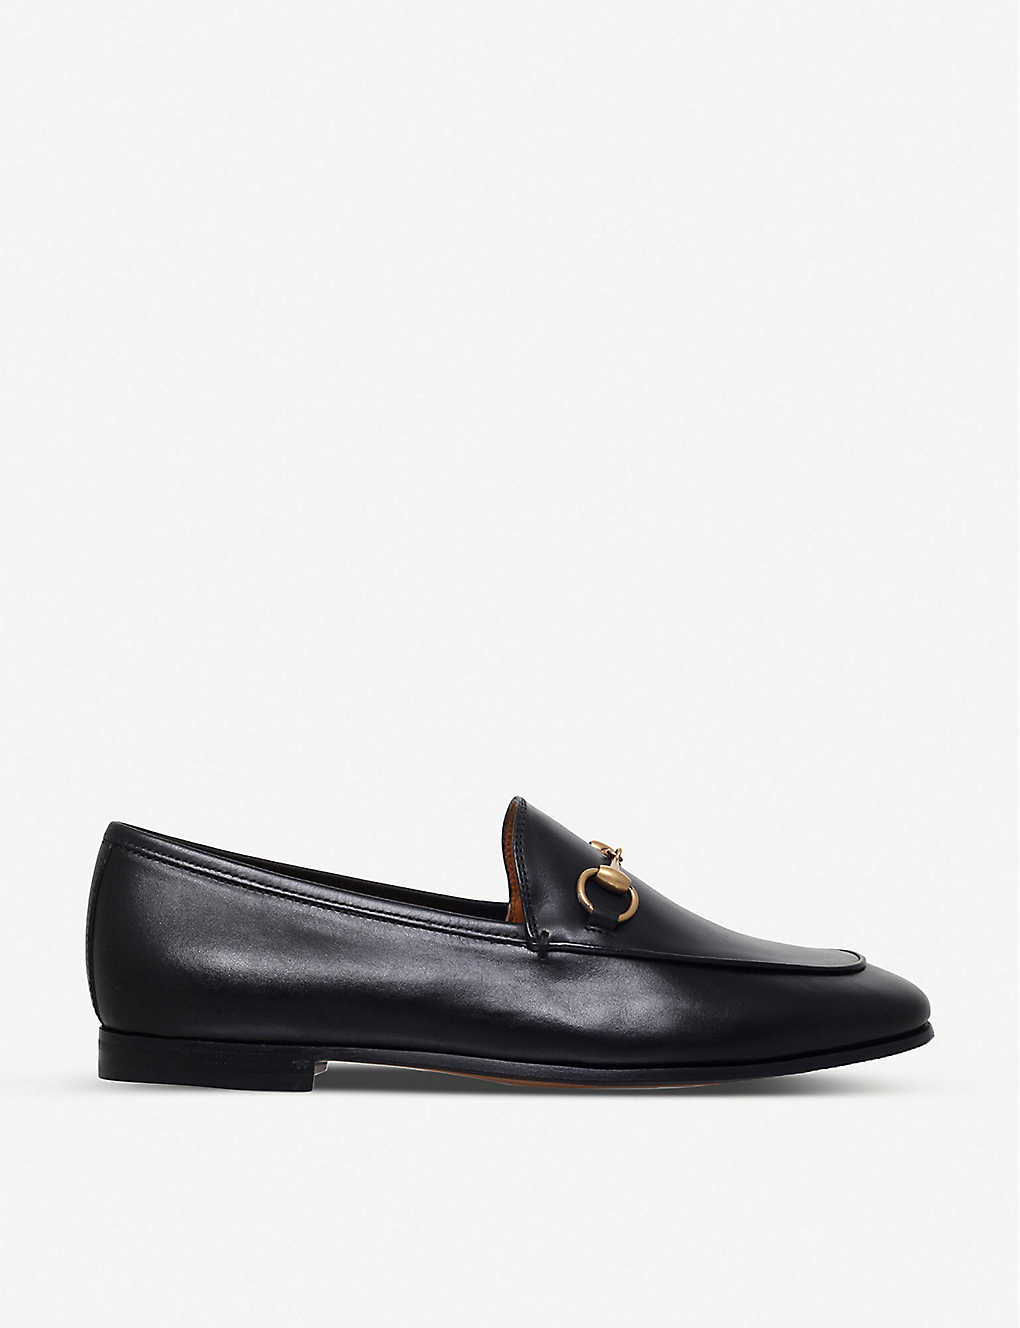 1bd4d630768 Jordaan leather loafers - Black ...